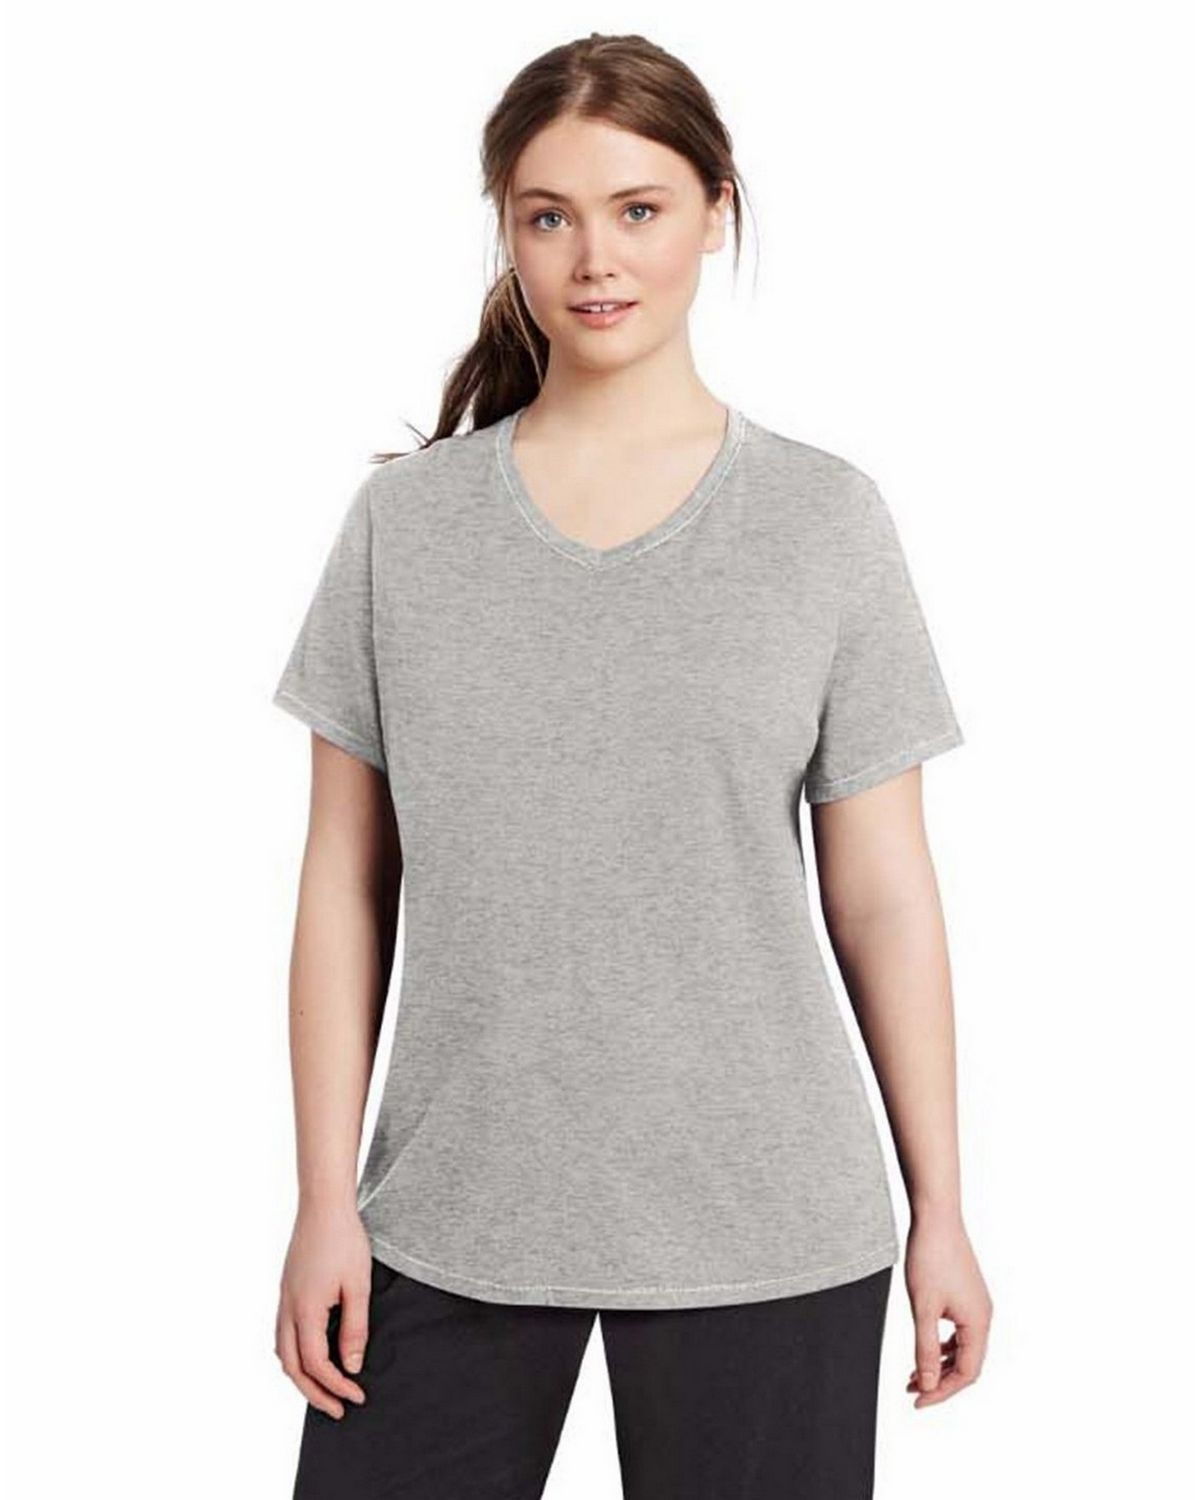 Champion QW1244 Womens Plus Jersey V-Neck - Oxford Grey - 2X QW1244